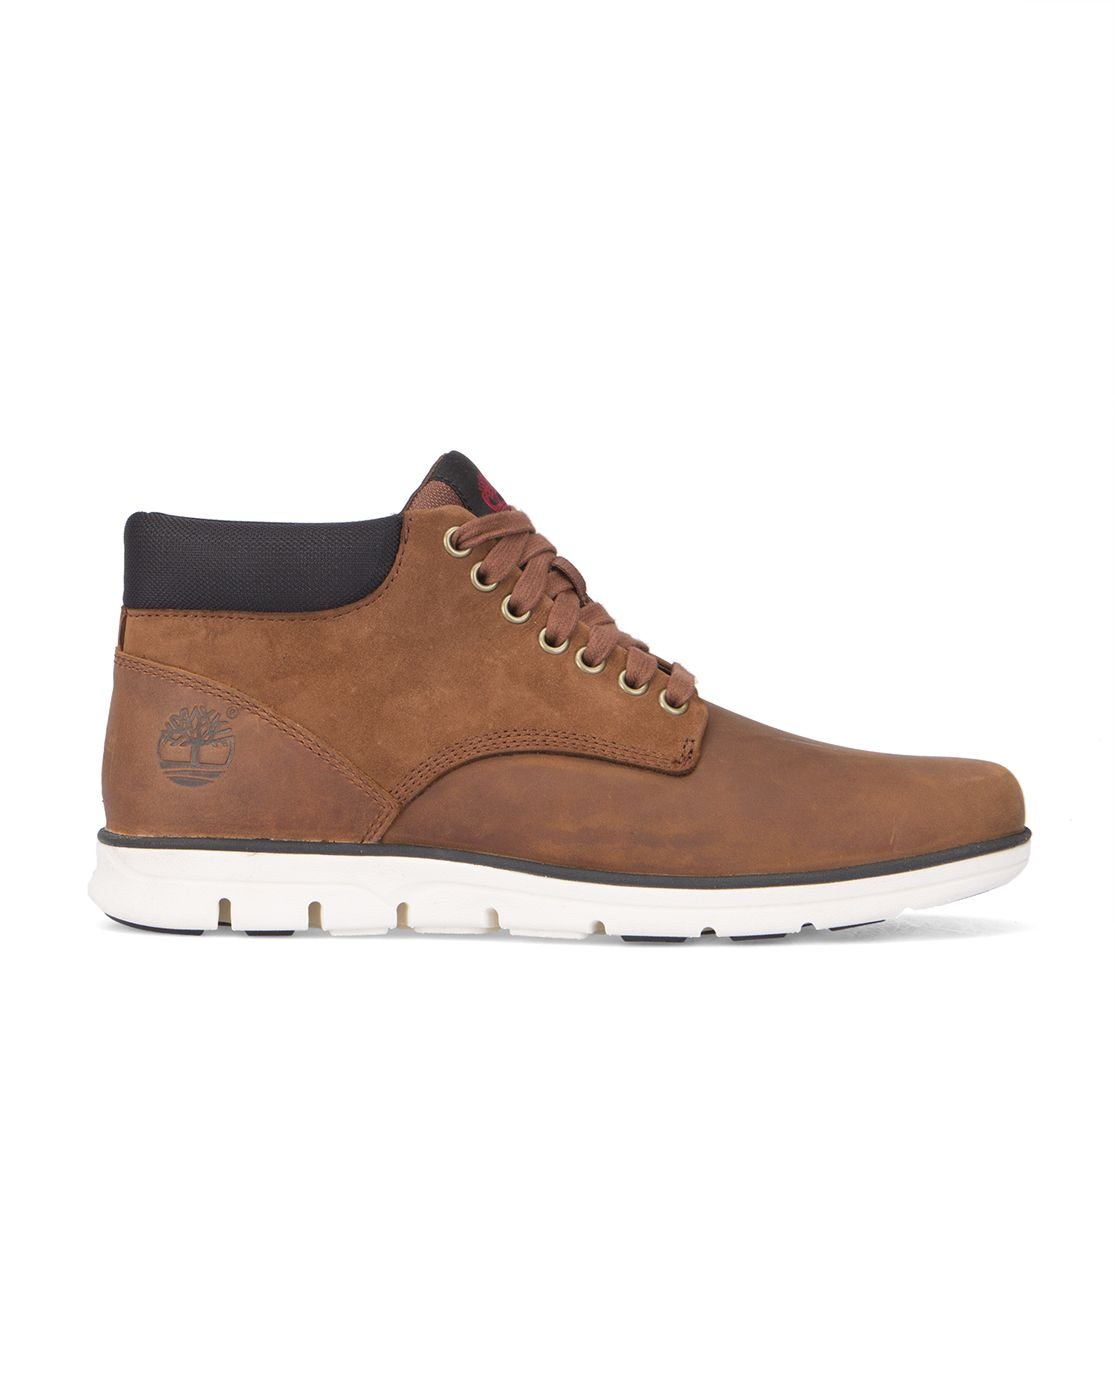 Sneakers homme timberland